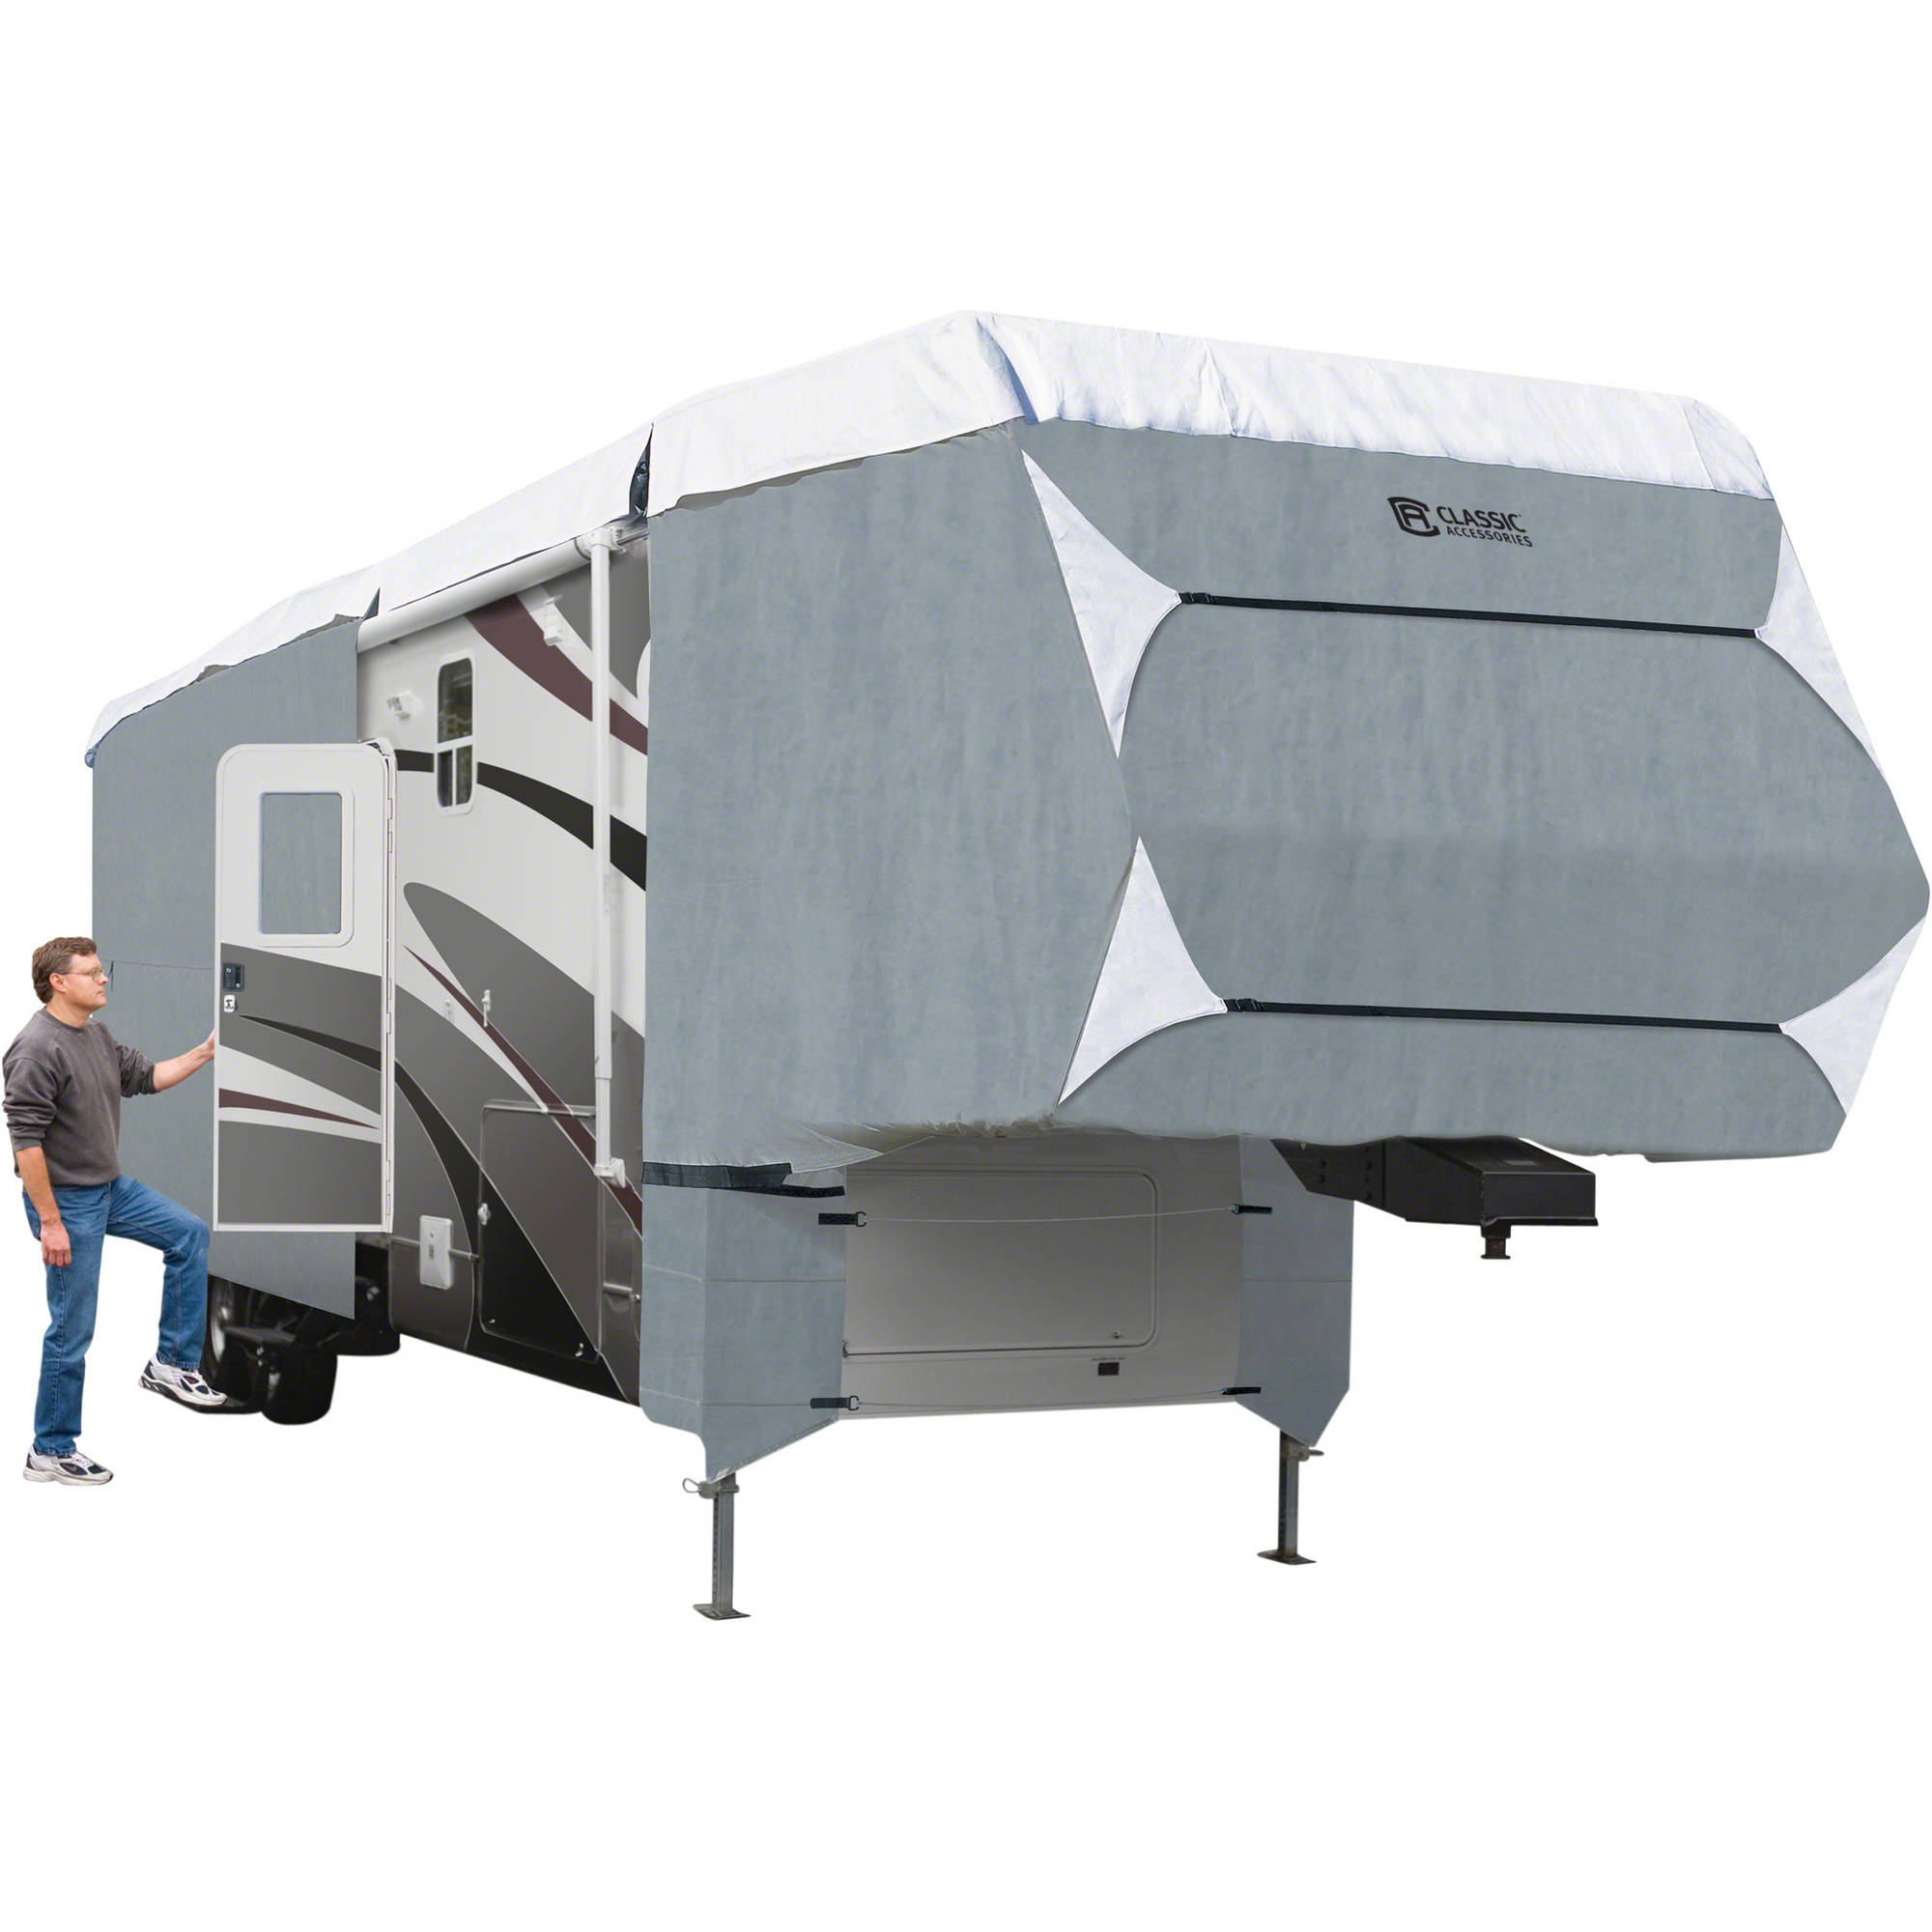 Classic Accessories PolyPro3 5th Wheel and Toy Hauler RV Cover